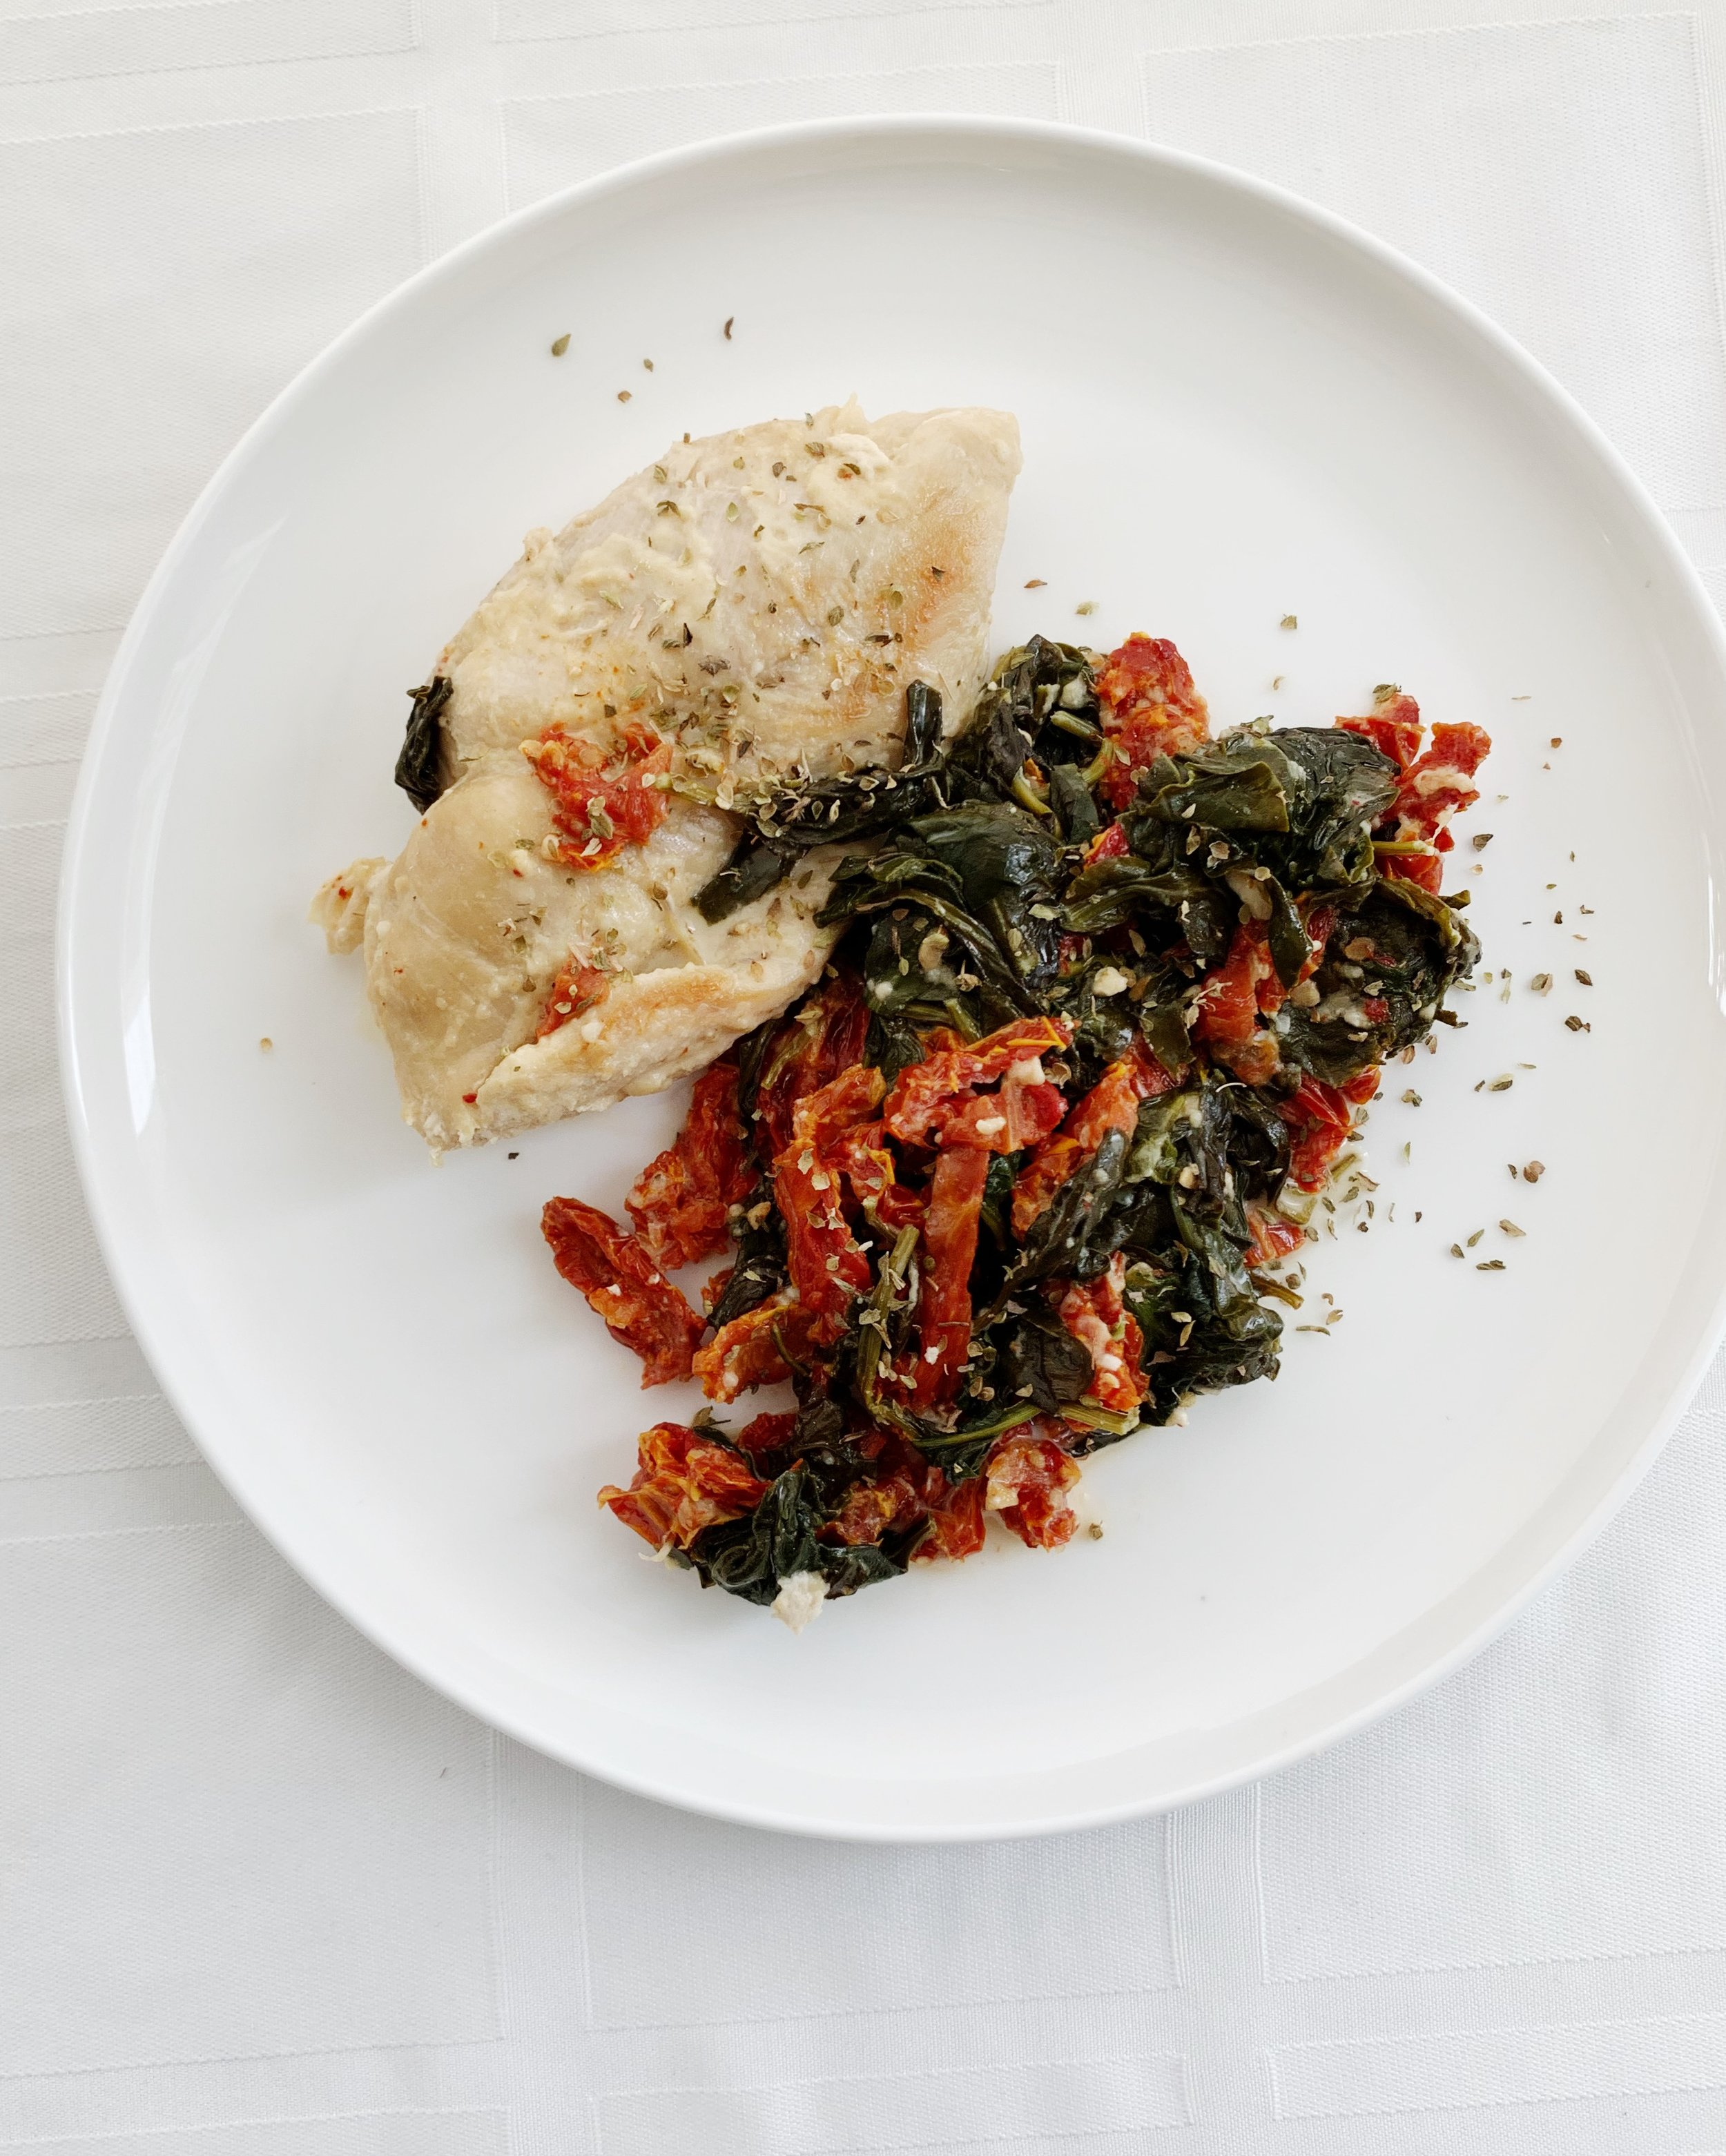 Instant Pot Creamy Chicken with Spinach and Sun Dried Tomatoes